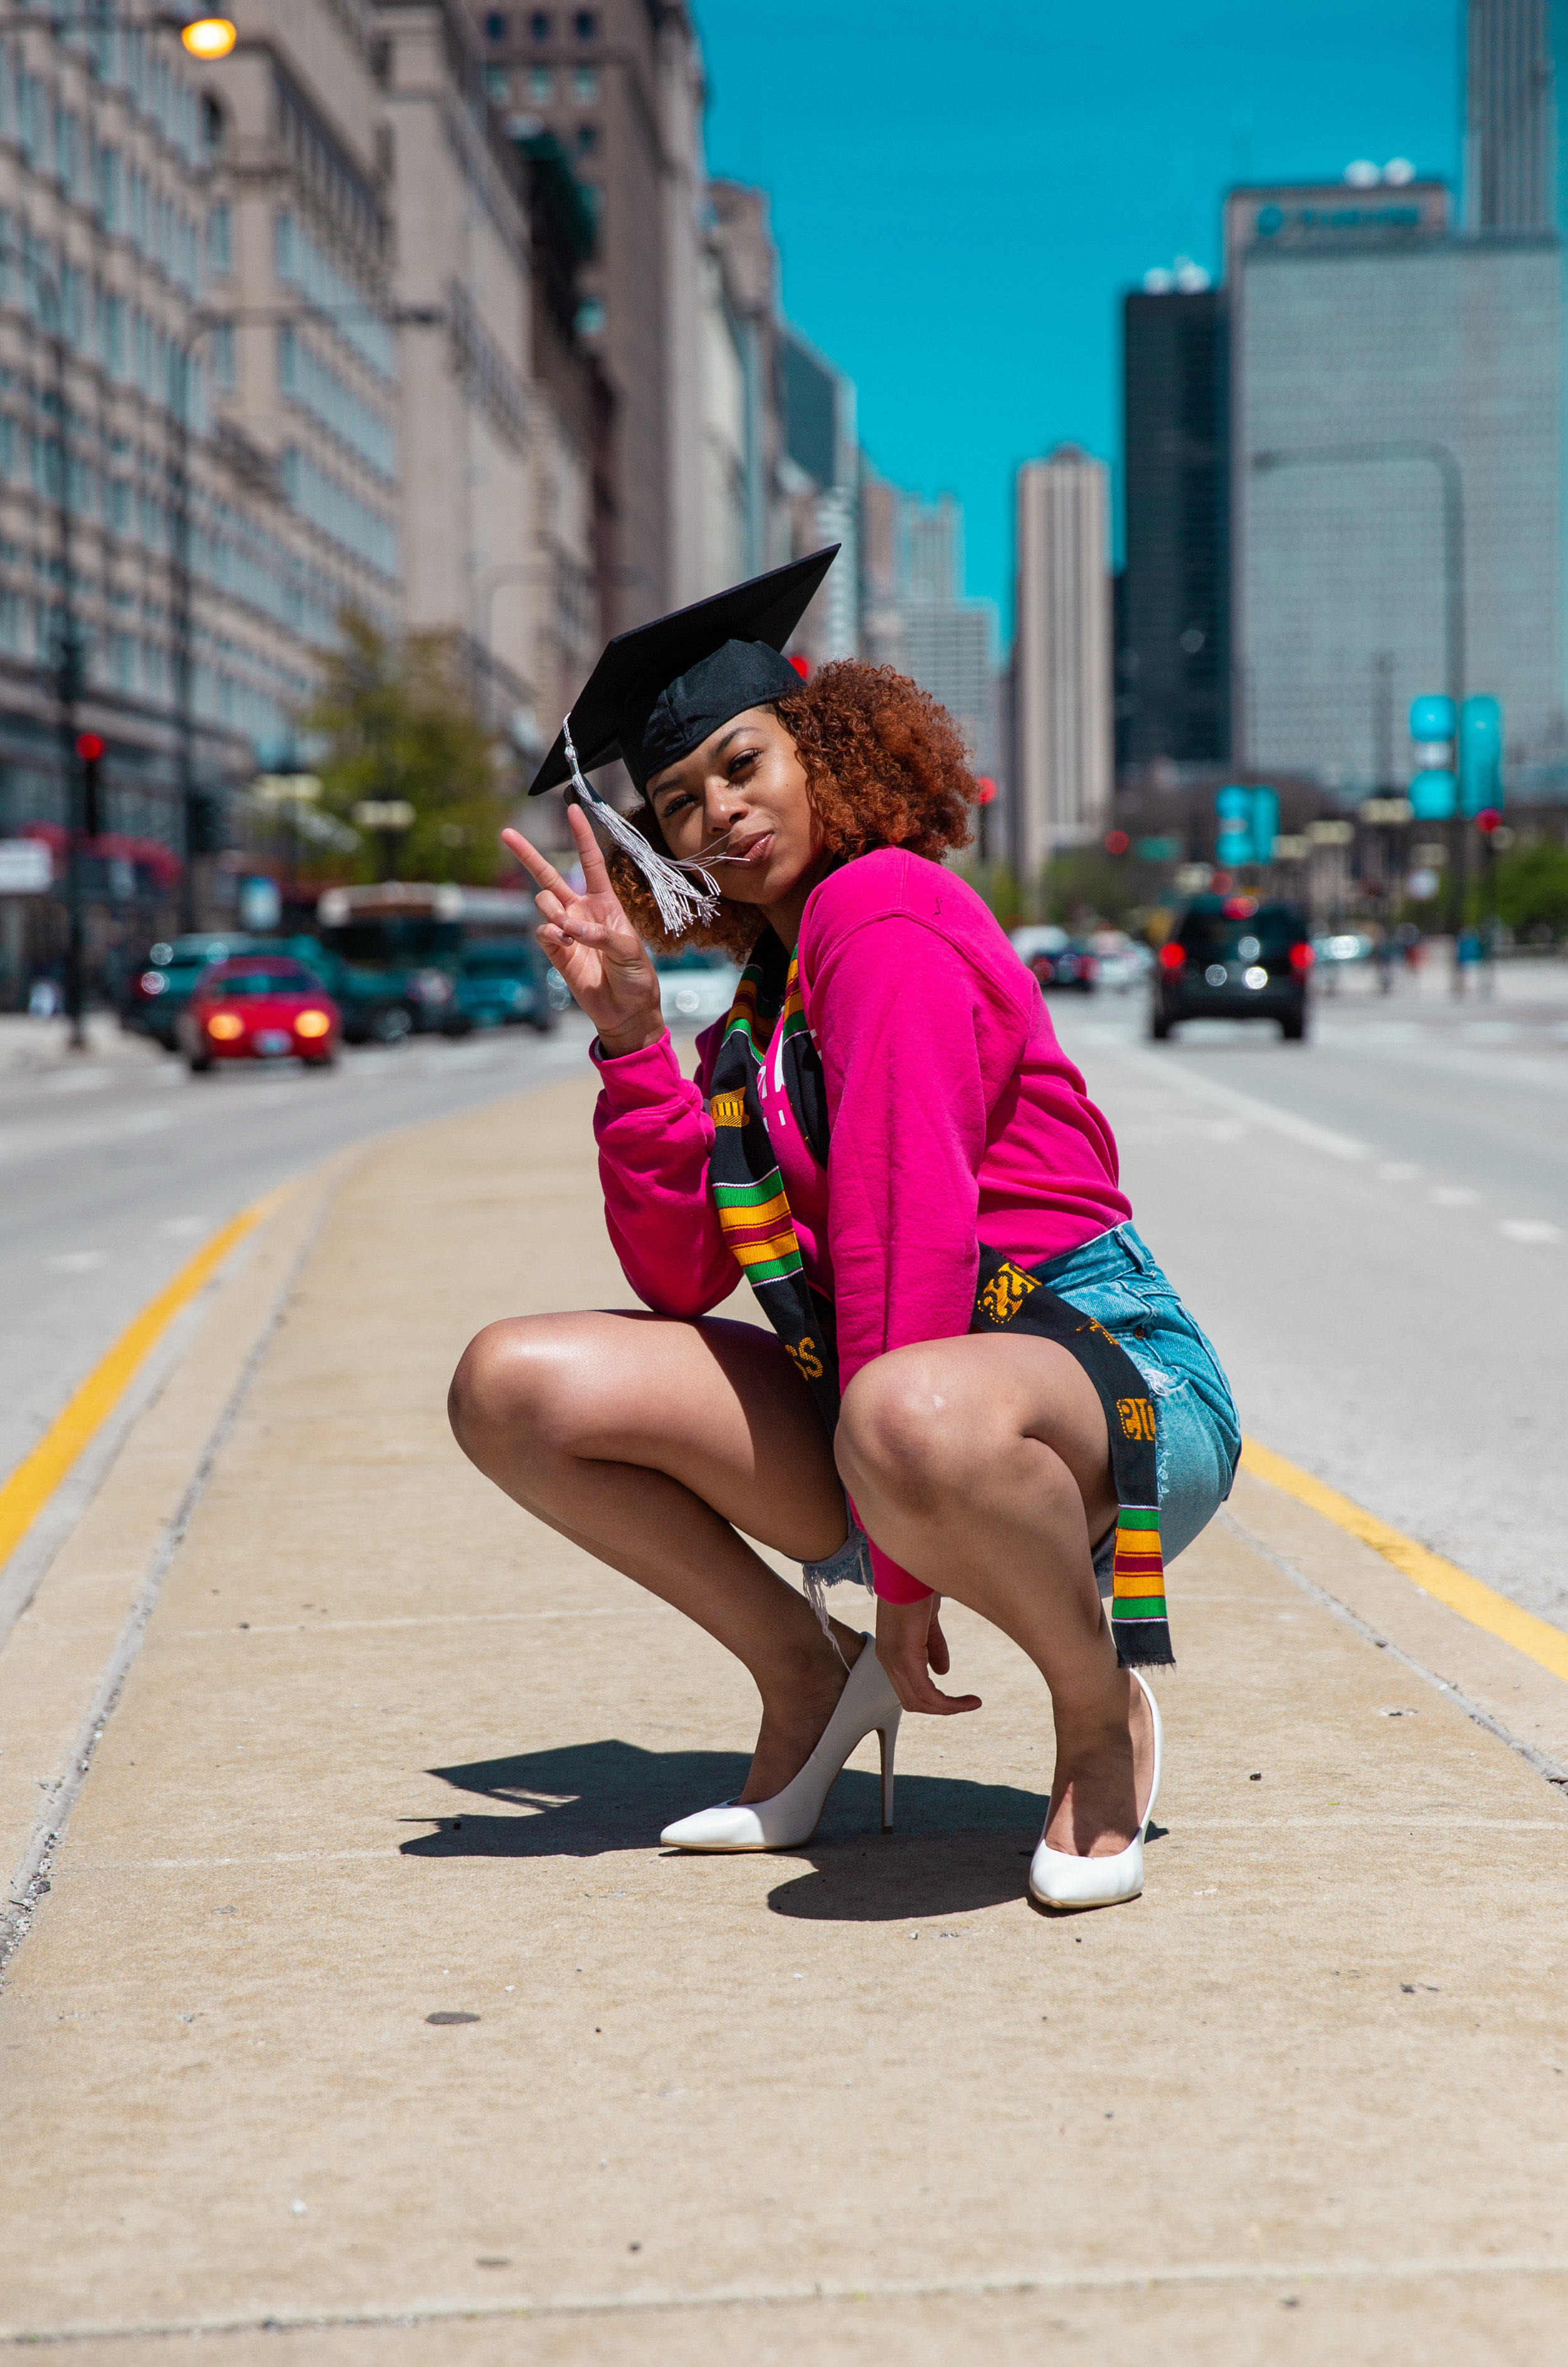 213891a600 It's been about a month since I graduated college and it still feels  surreal, it hasn't quite hit me that I achieved one of the biggest  accomplishments of ...